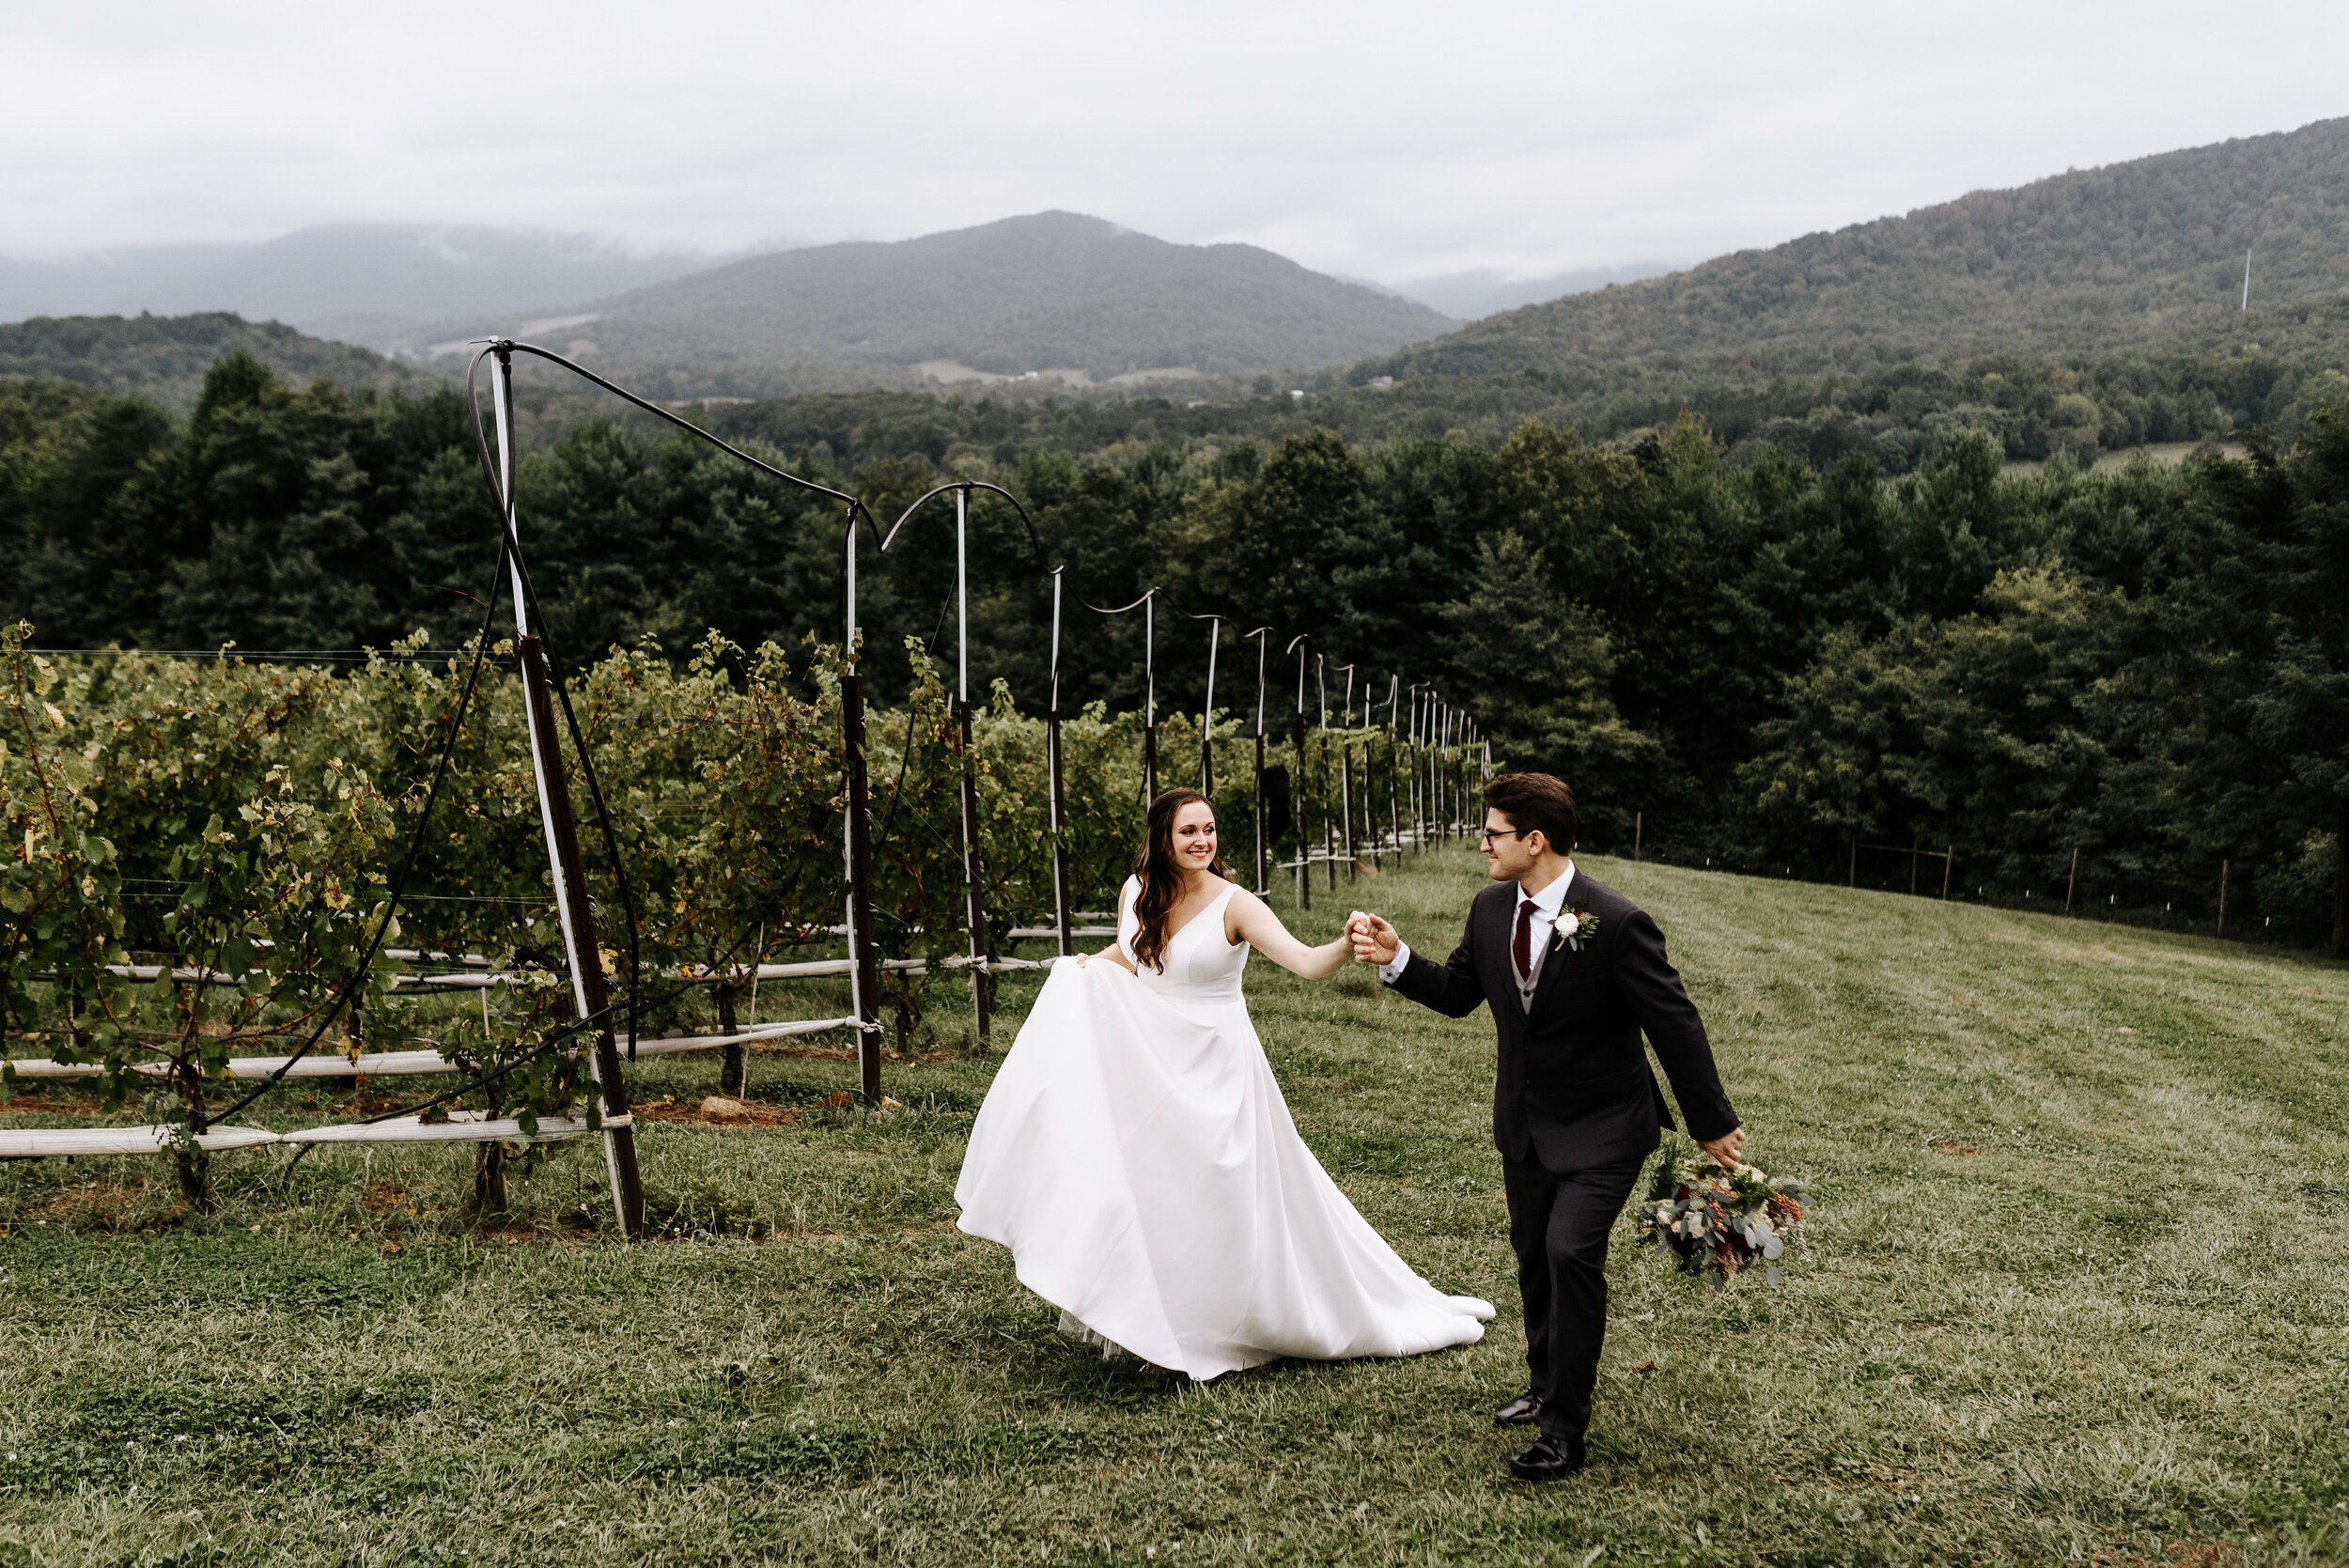 Allison_Nolan_Moss_Vineyards_Wedding_Charlottesville_Virginia_Photography_by_V_35.jpg